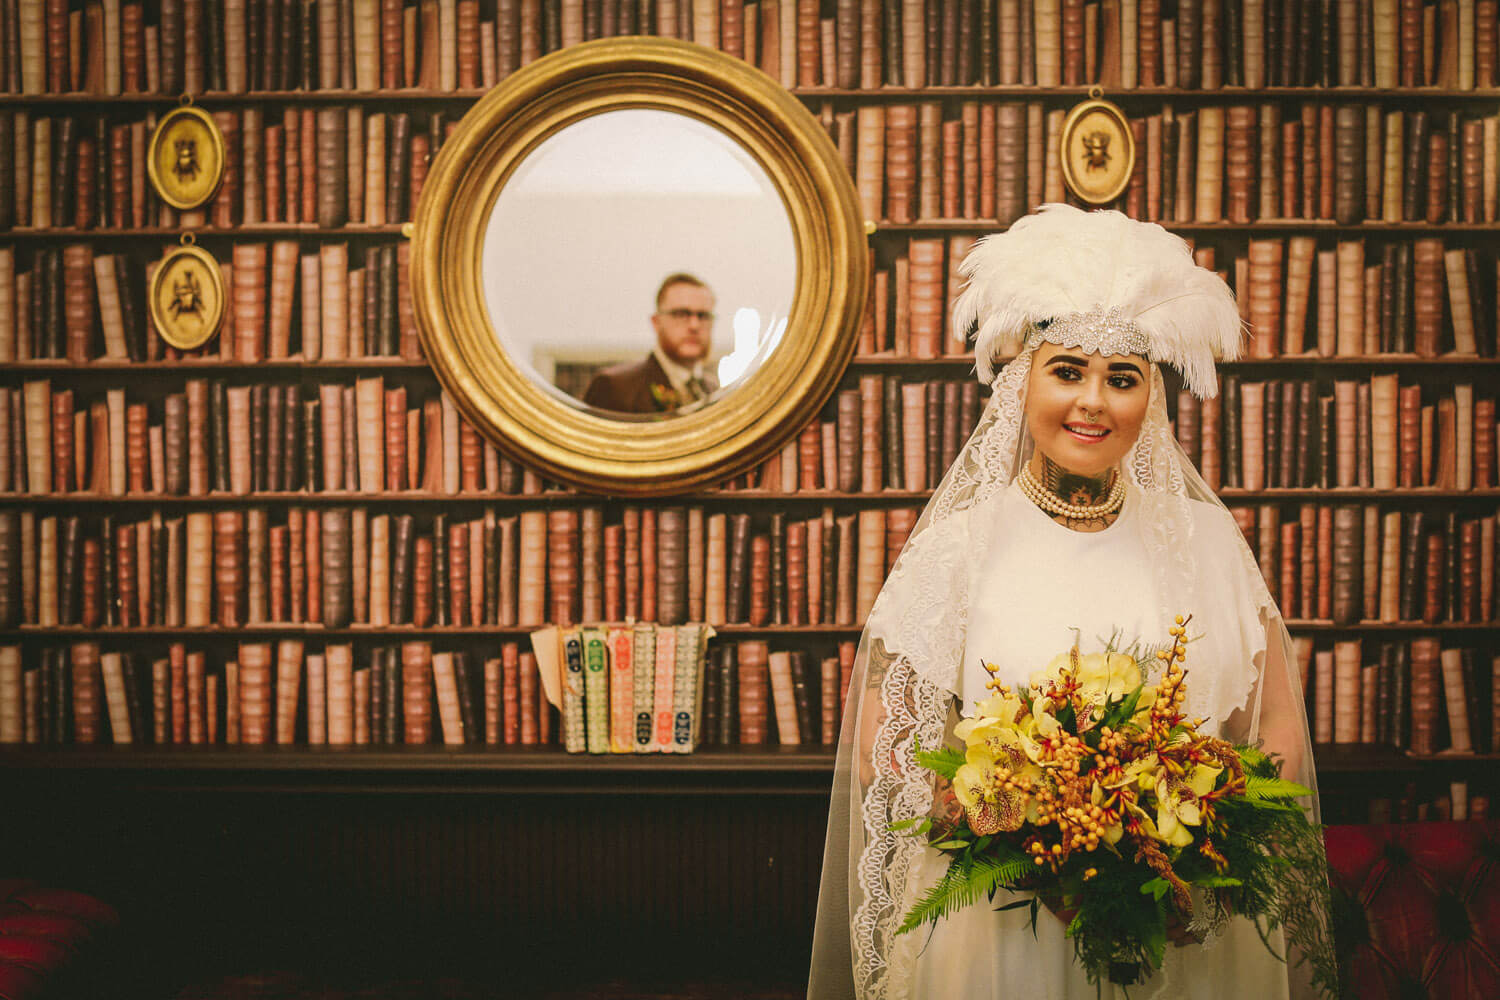 Vintage bride wearing headwear and reflection of groom in mirror